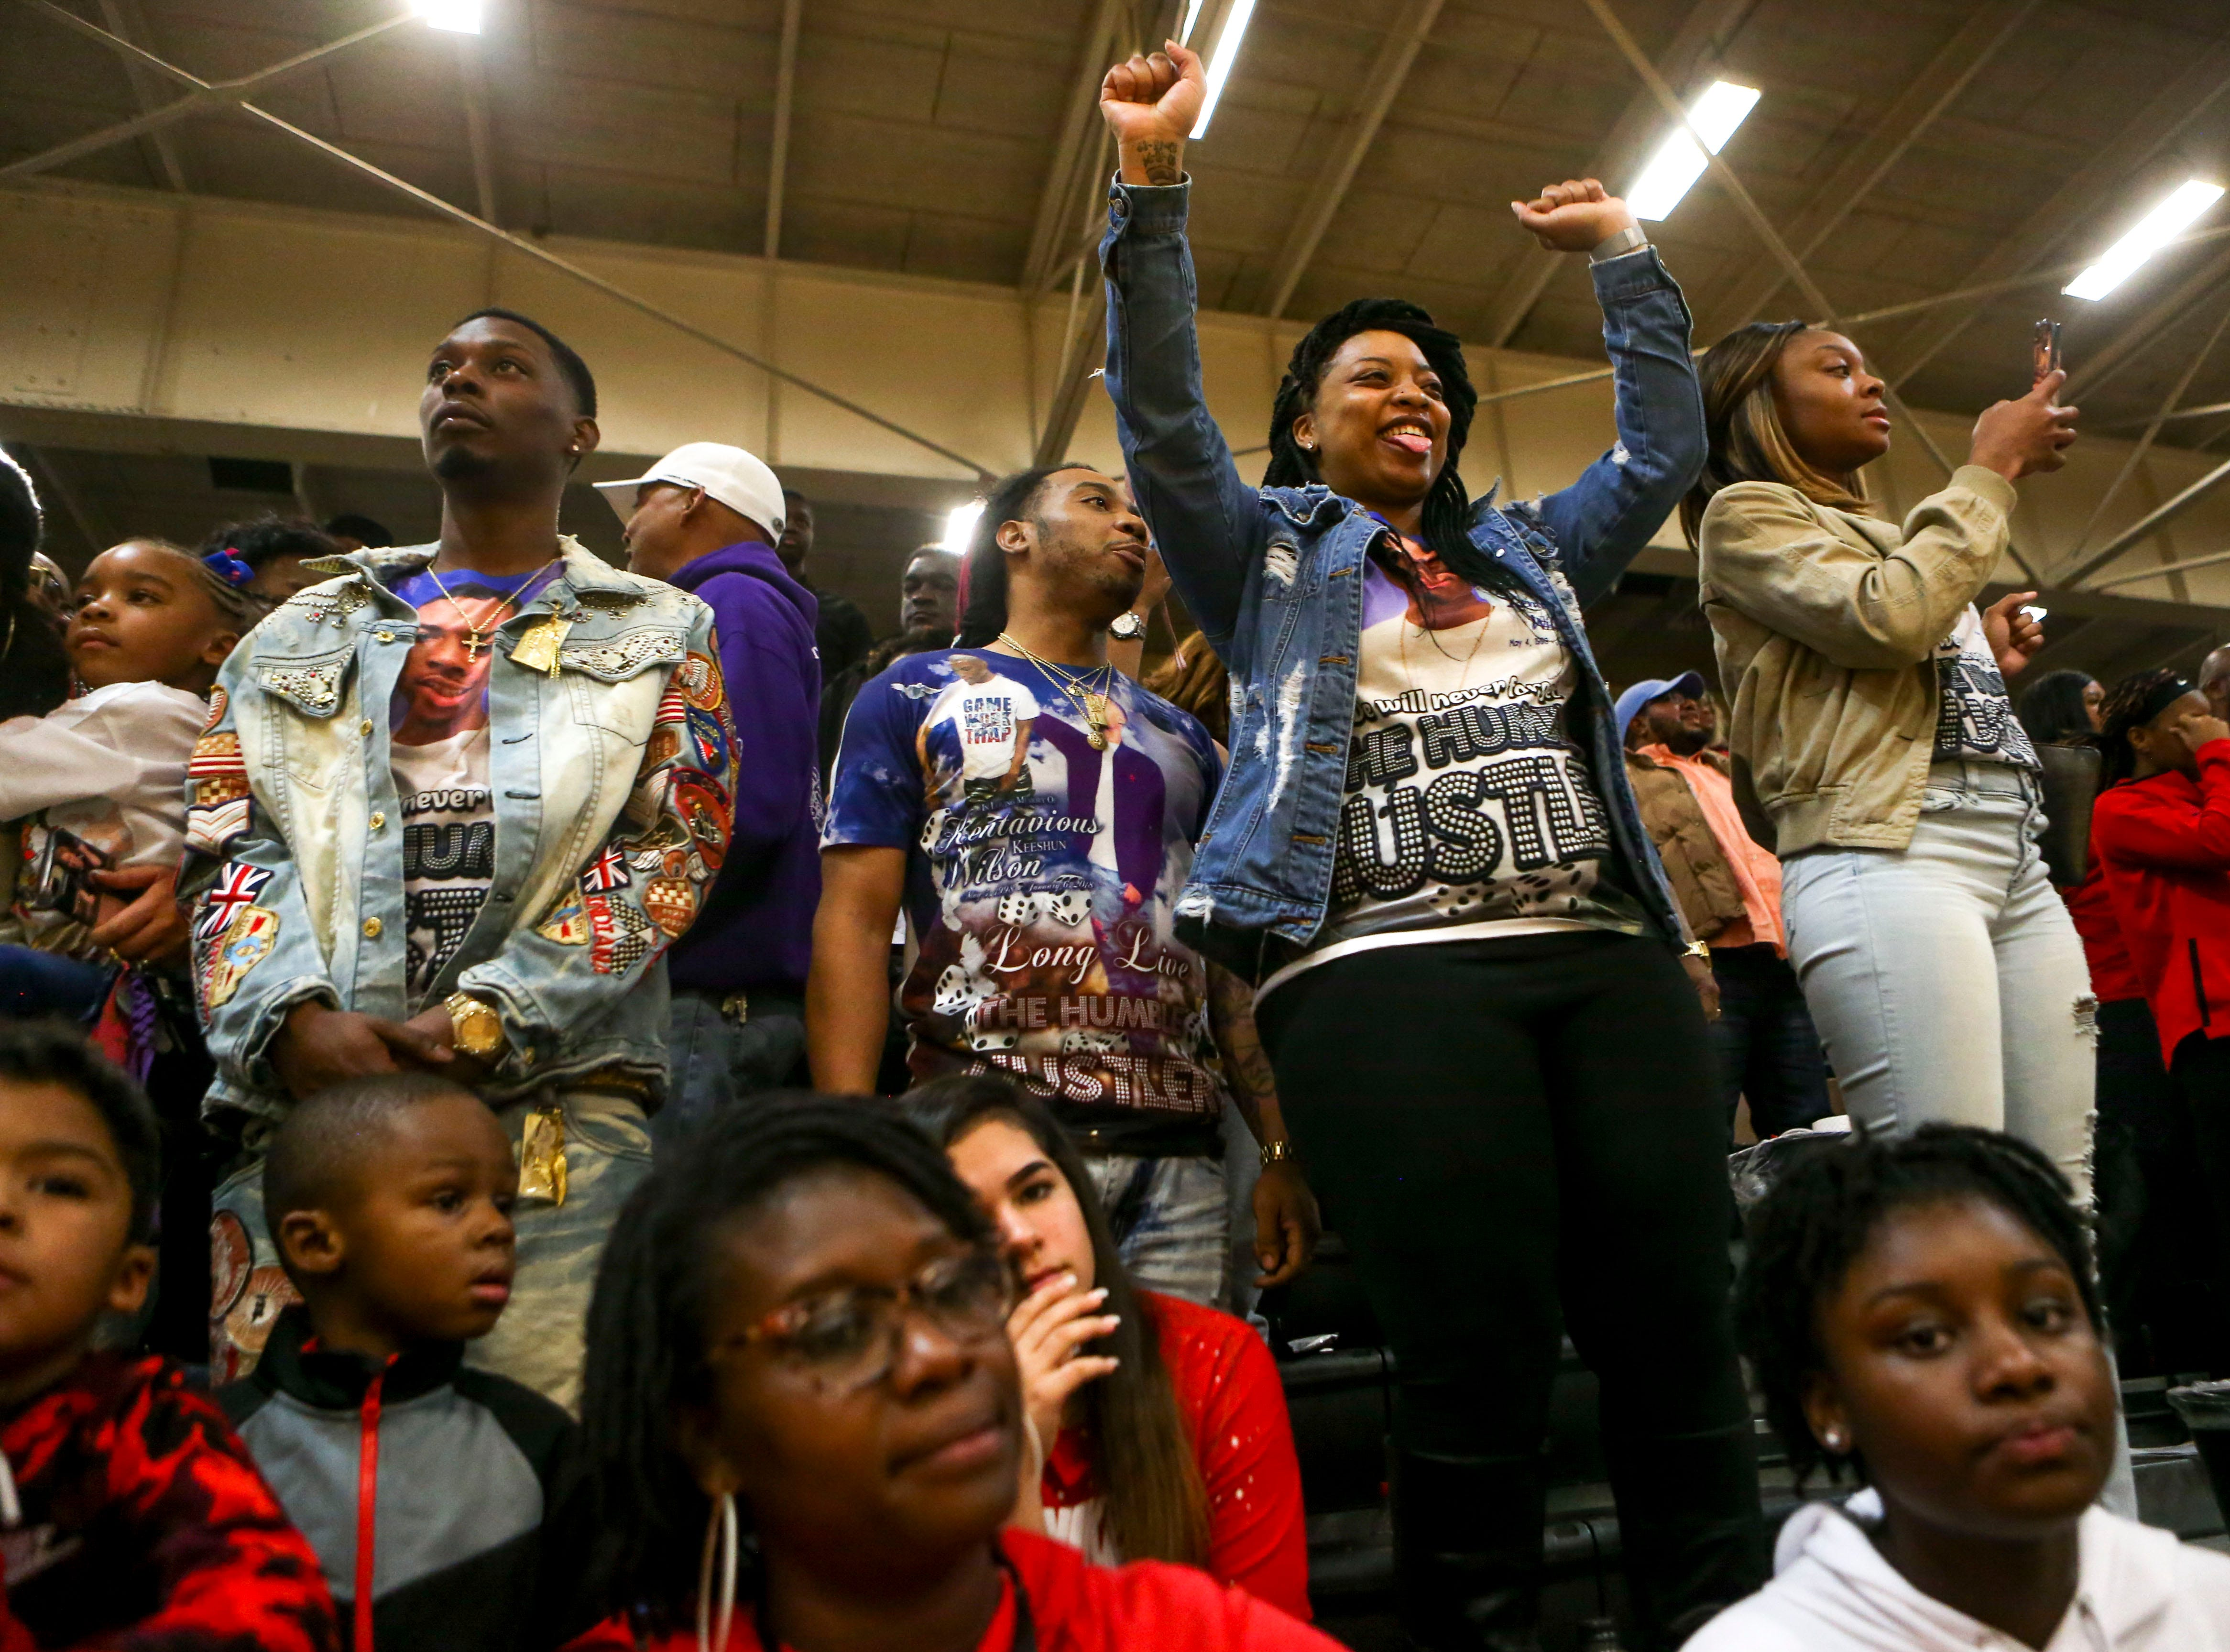 Friends and family celebrate Haywood's victory during a TSSAA basketball game between South Side and Haywood on the anniversary of Kentavious Wilson, a former Haywood player's, death at South Side High School in Jackson, Tenn., on Saturday, Jan. 5, 2019.